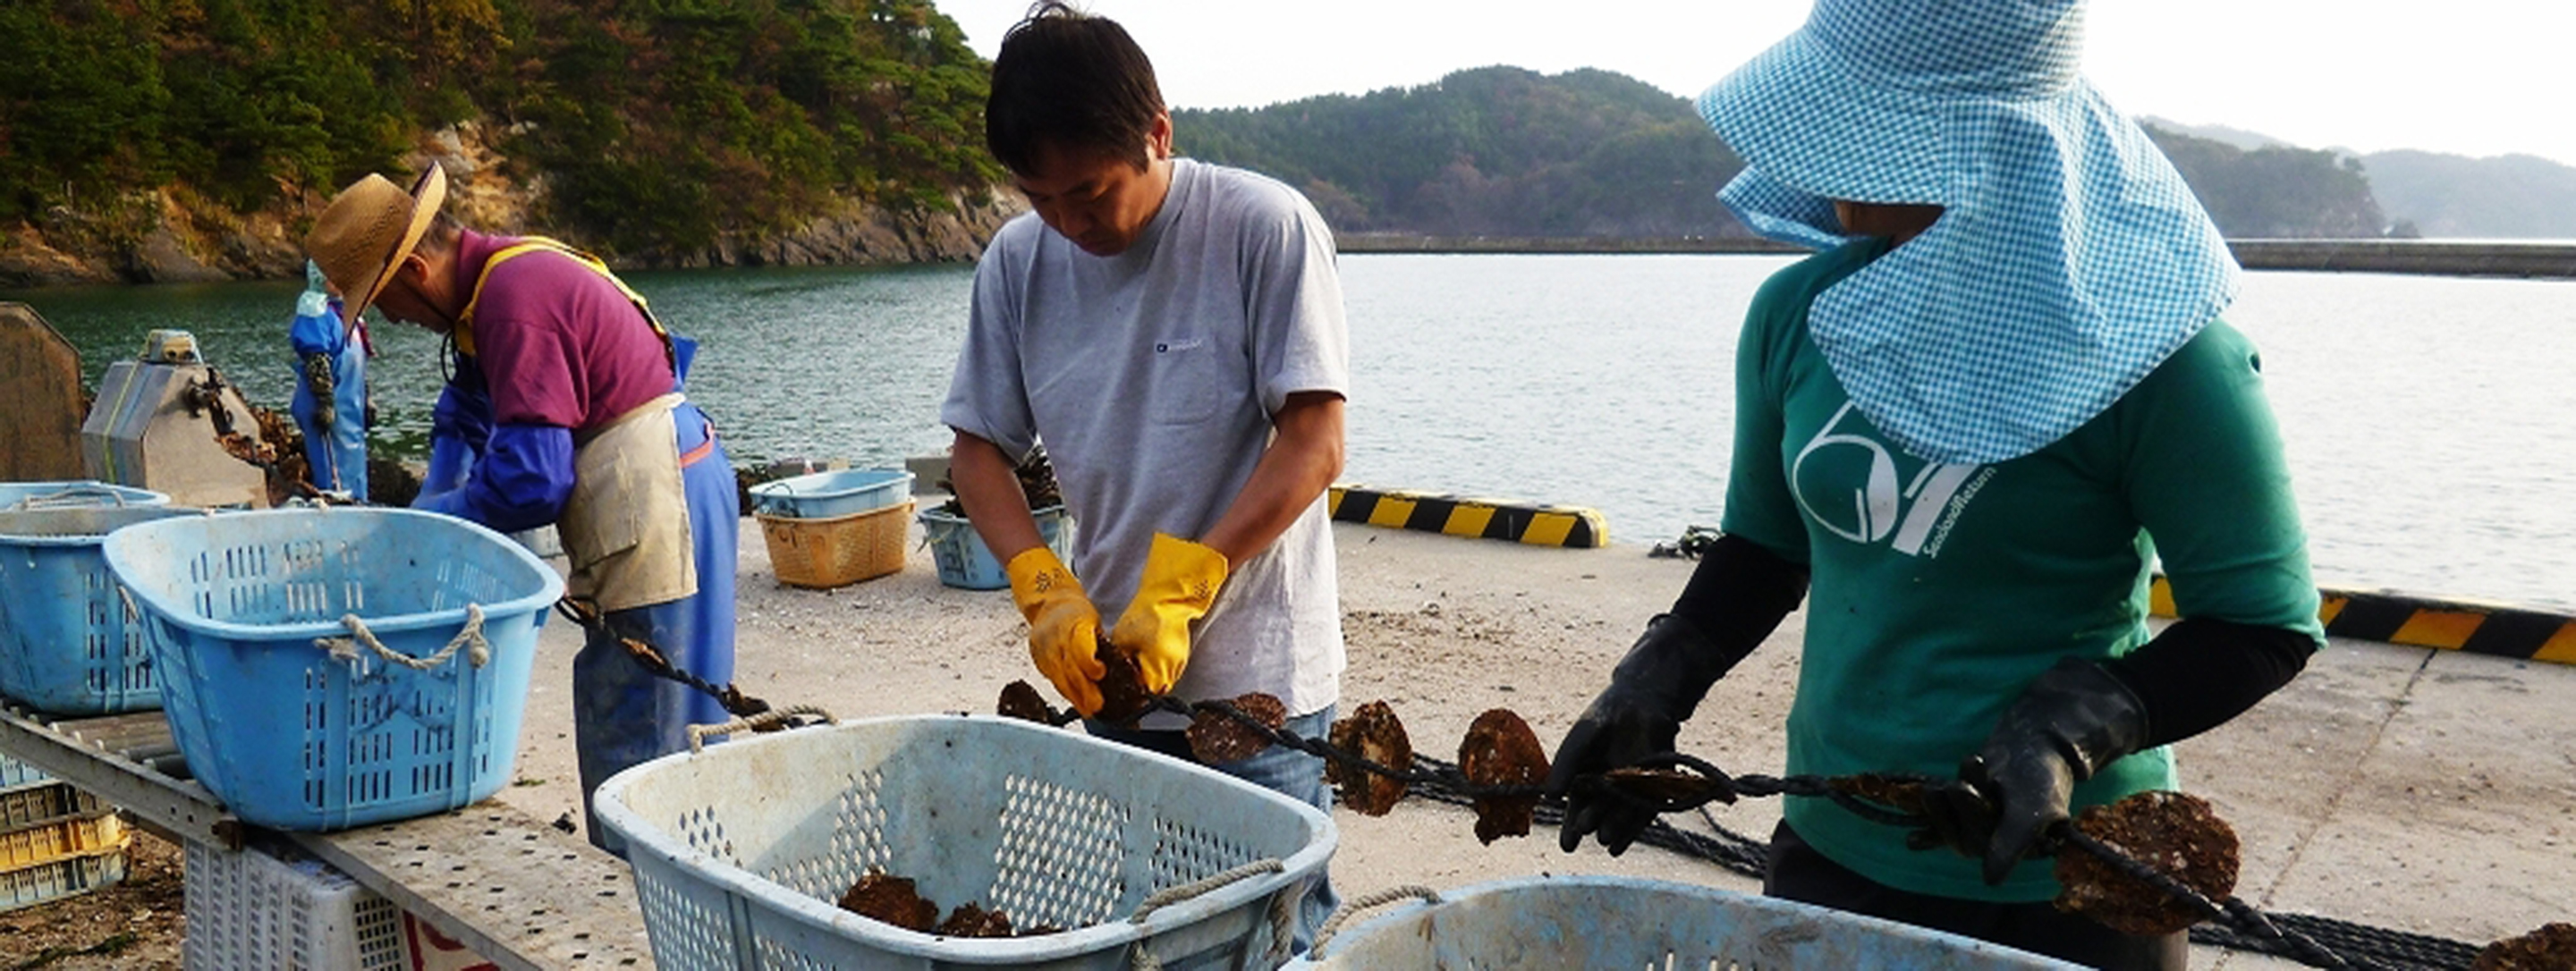 oyster farming in japan after the tsunami